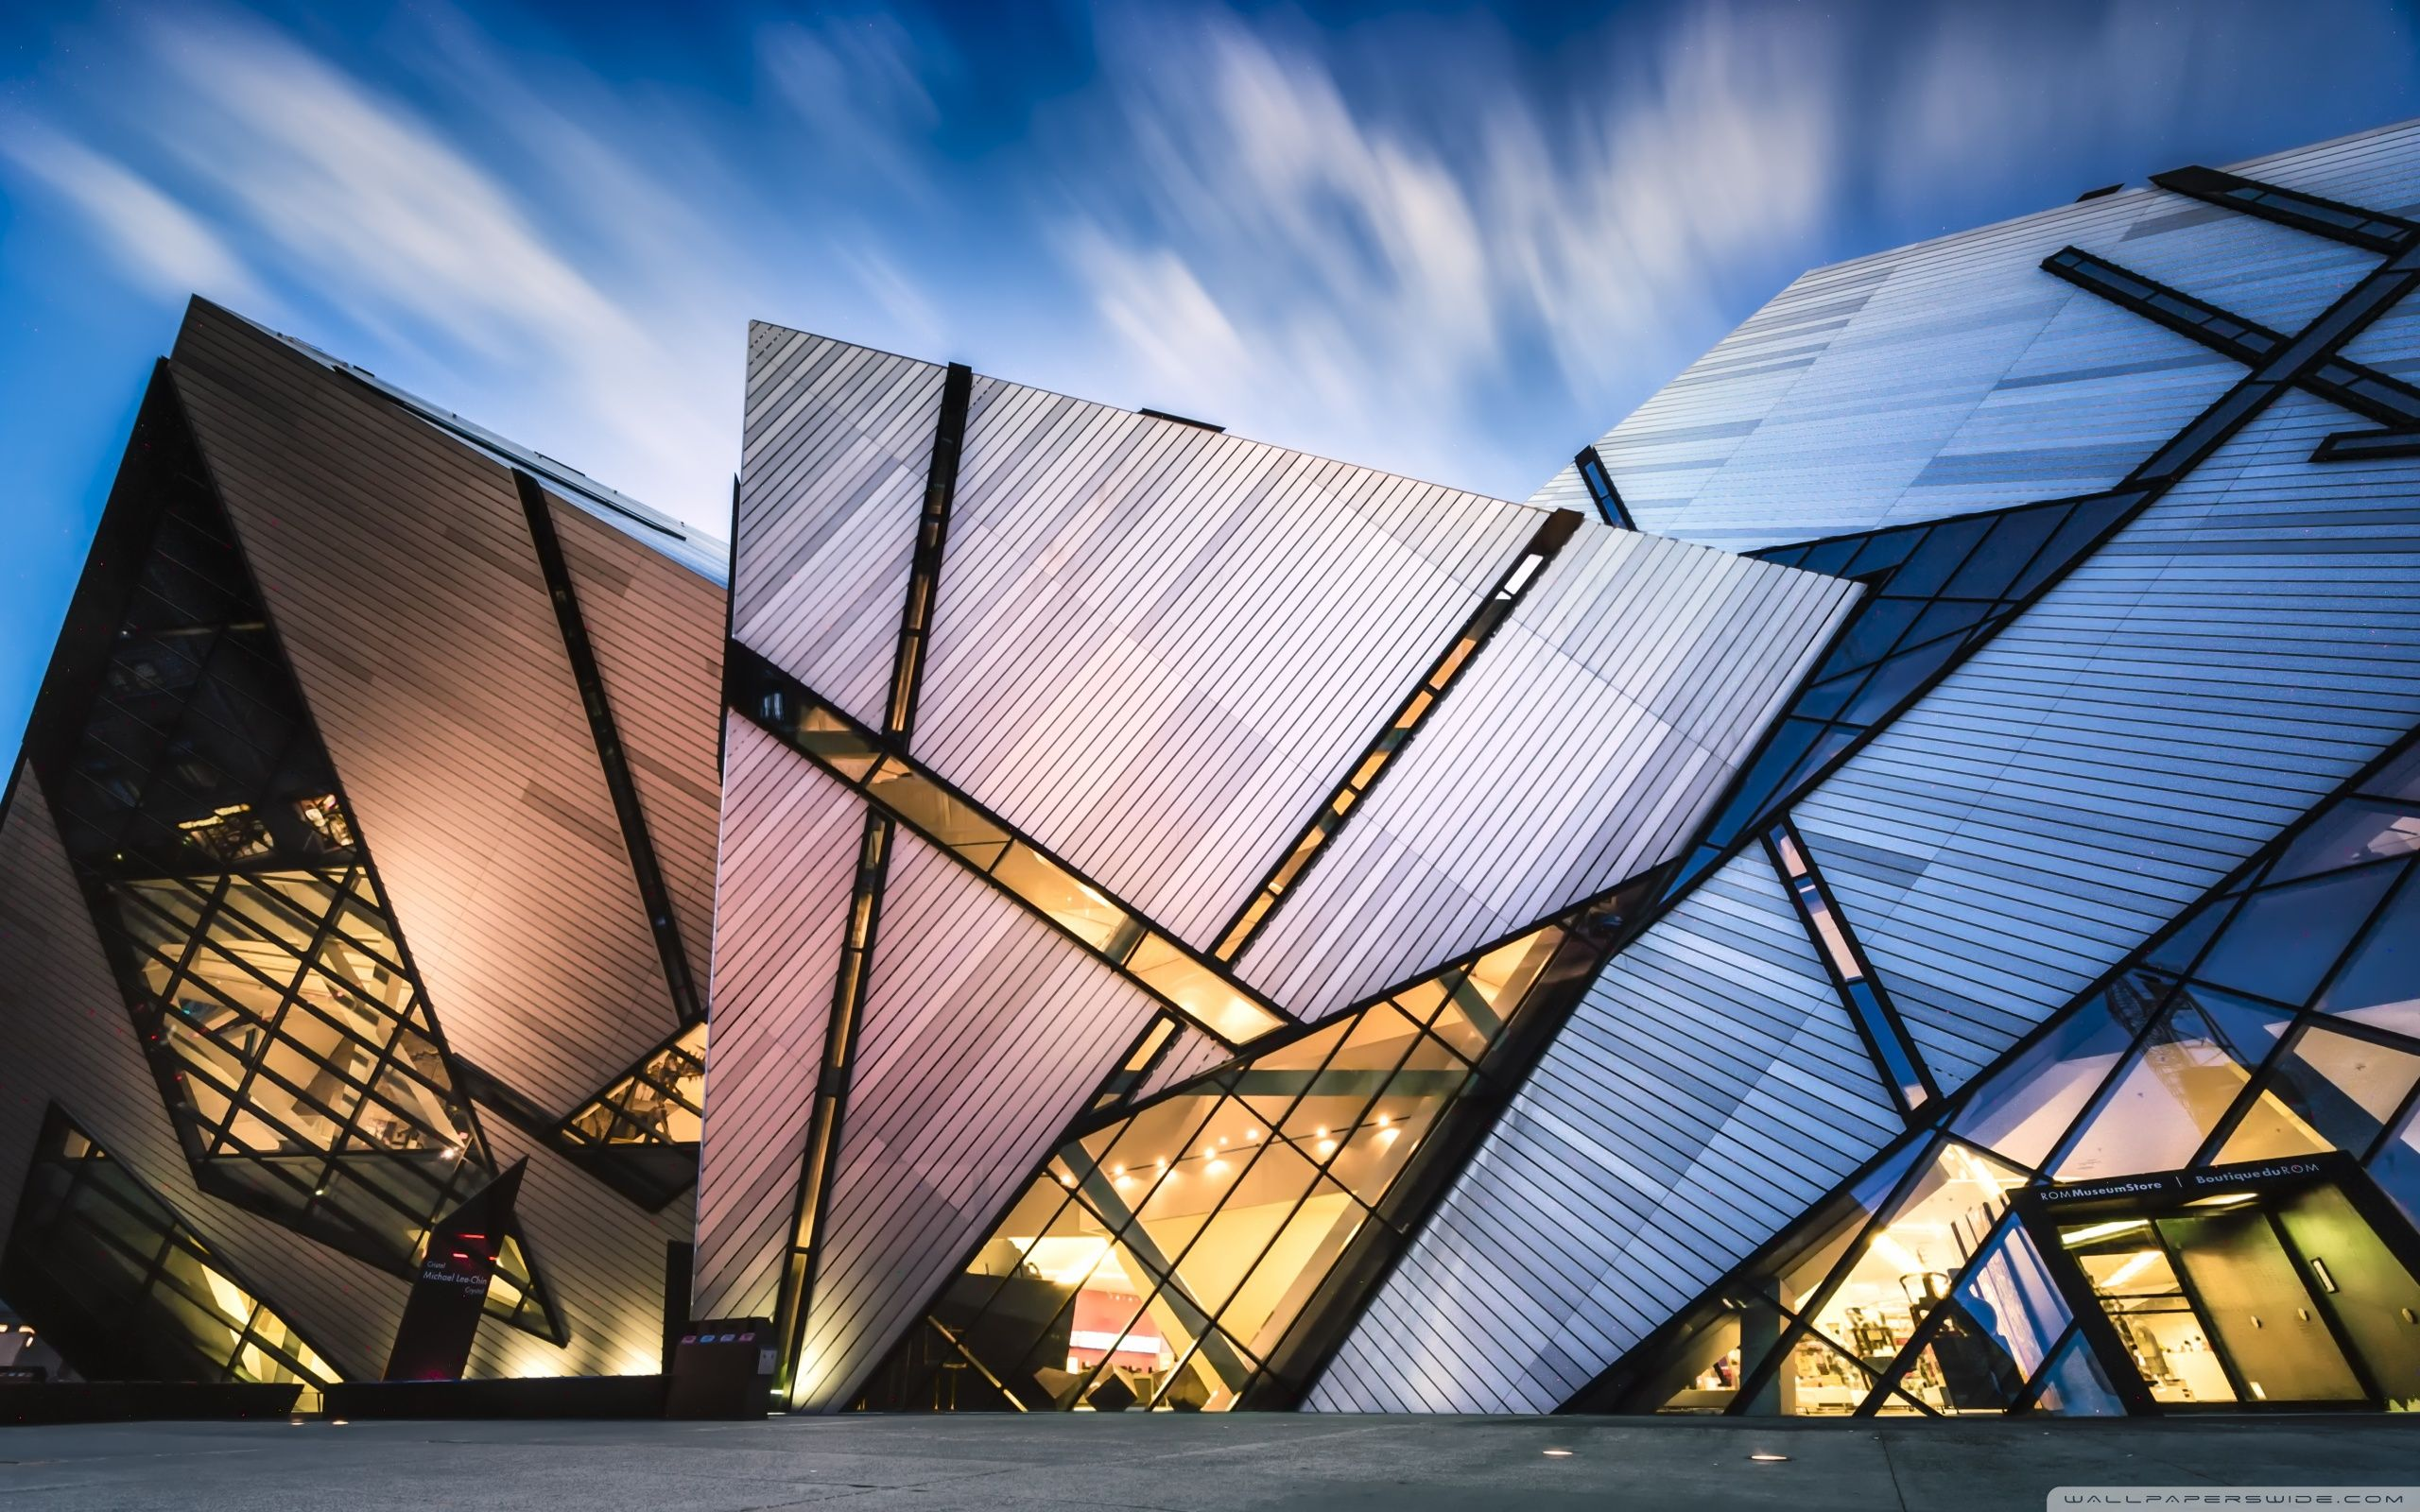 4k architecture wallpapers top free 4k architecture